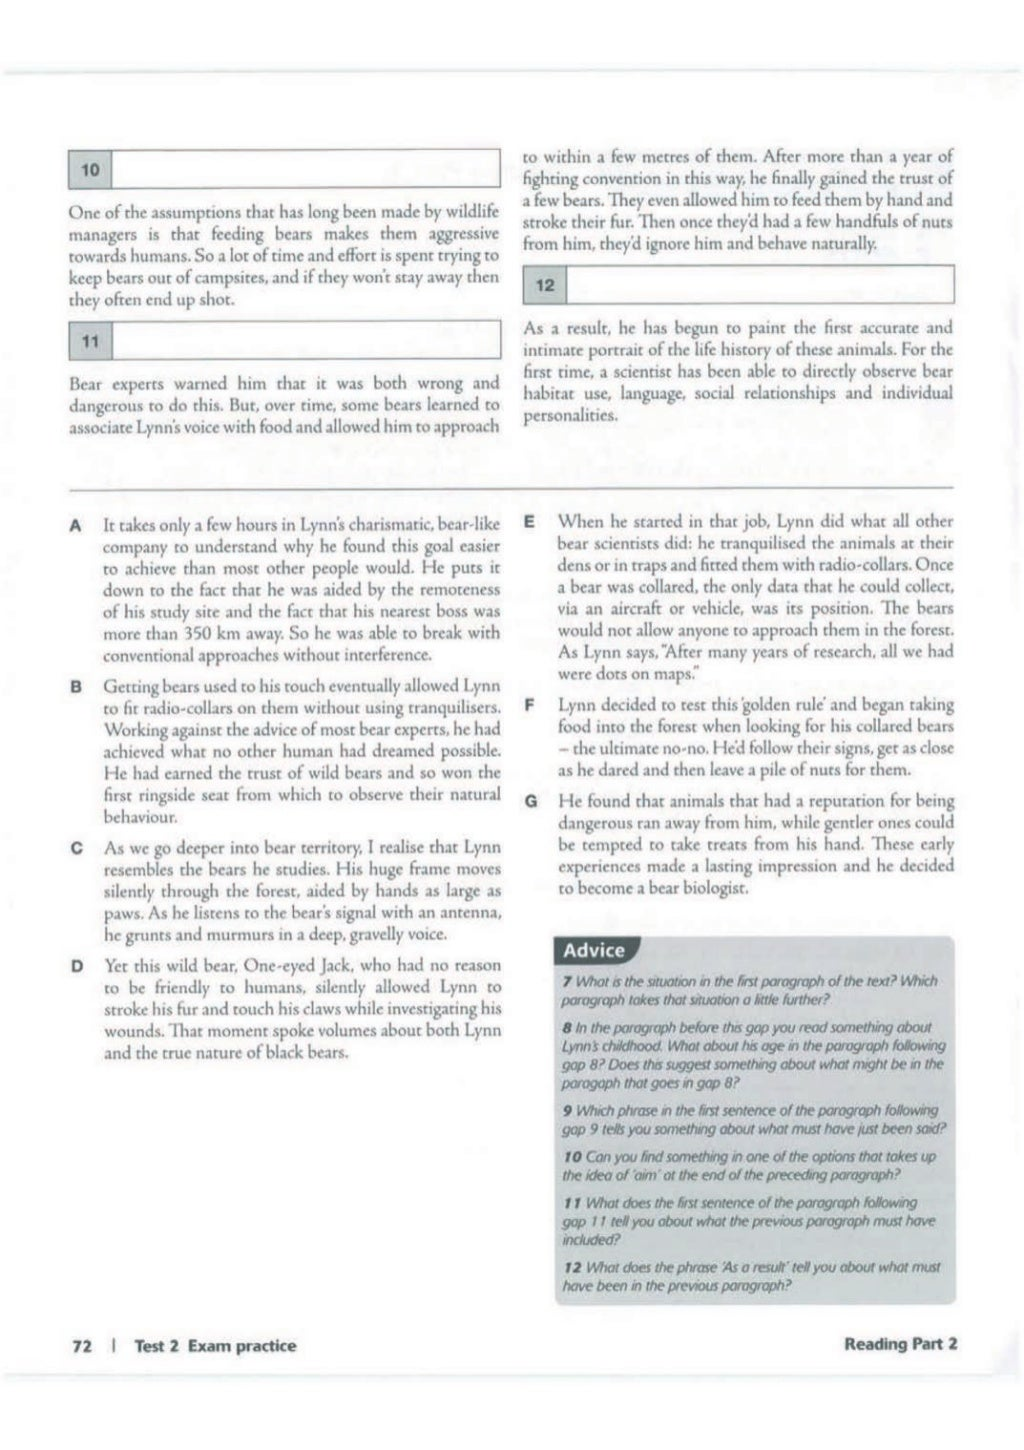 Advanced trainer 6 practice tests with answers book4joy (1) page 73